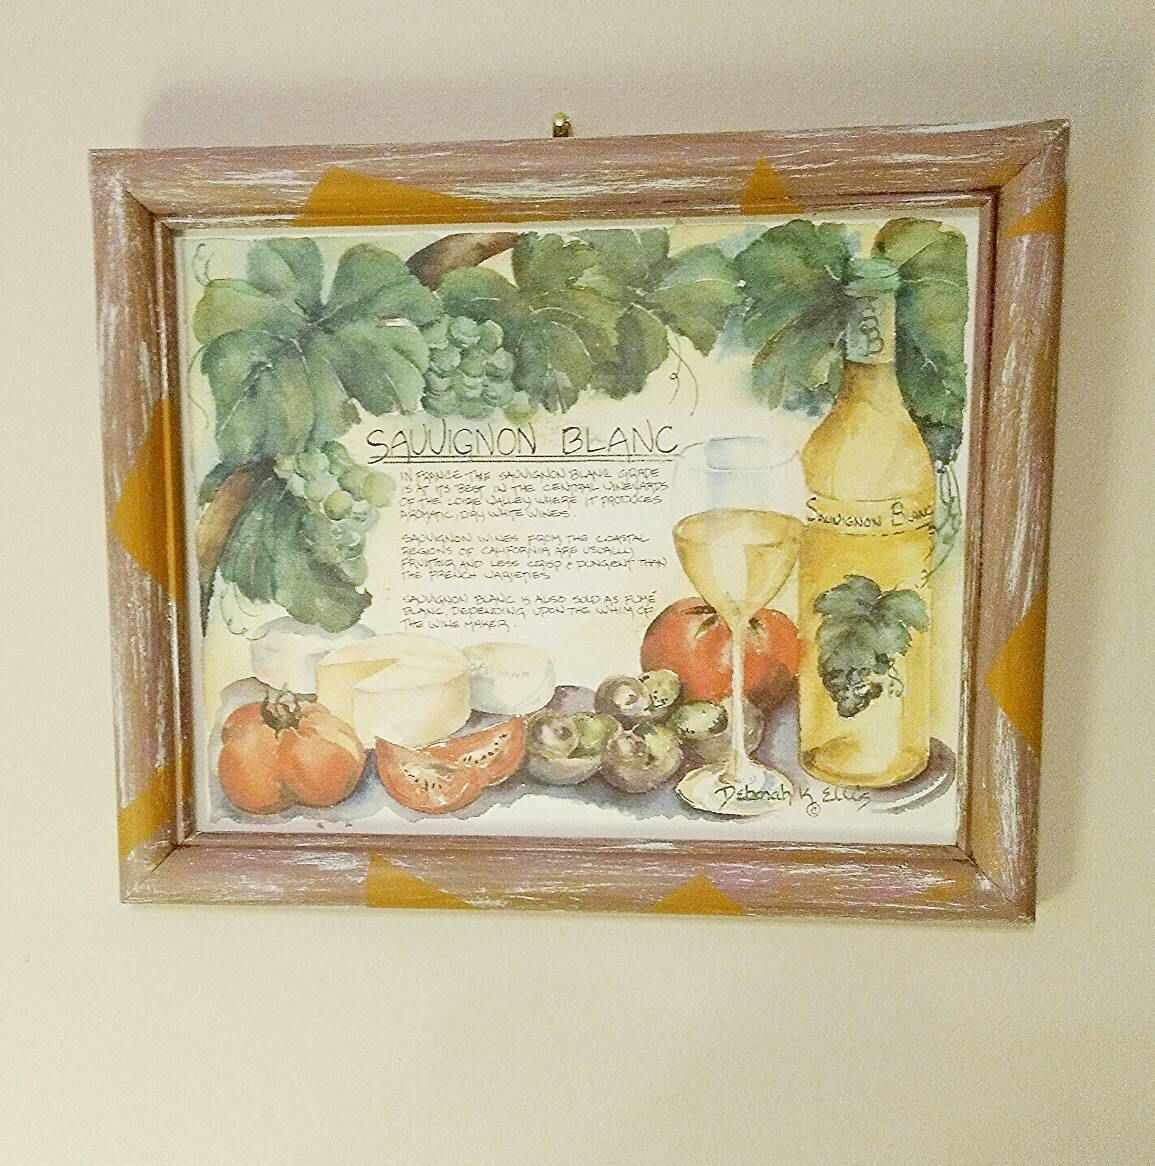 Wood picture frame hanging picture frame sauvignon blanc picture this large wooden picture frame has been hand painted in pink with orange geometric shapes the sauvignon blanc artwork was done by deborah ellis and comes jeuxipadfo Image collections